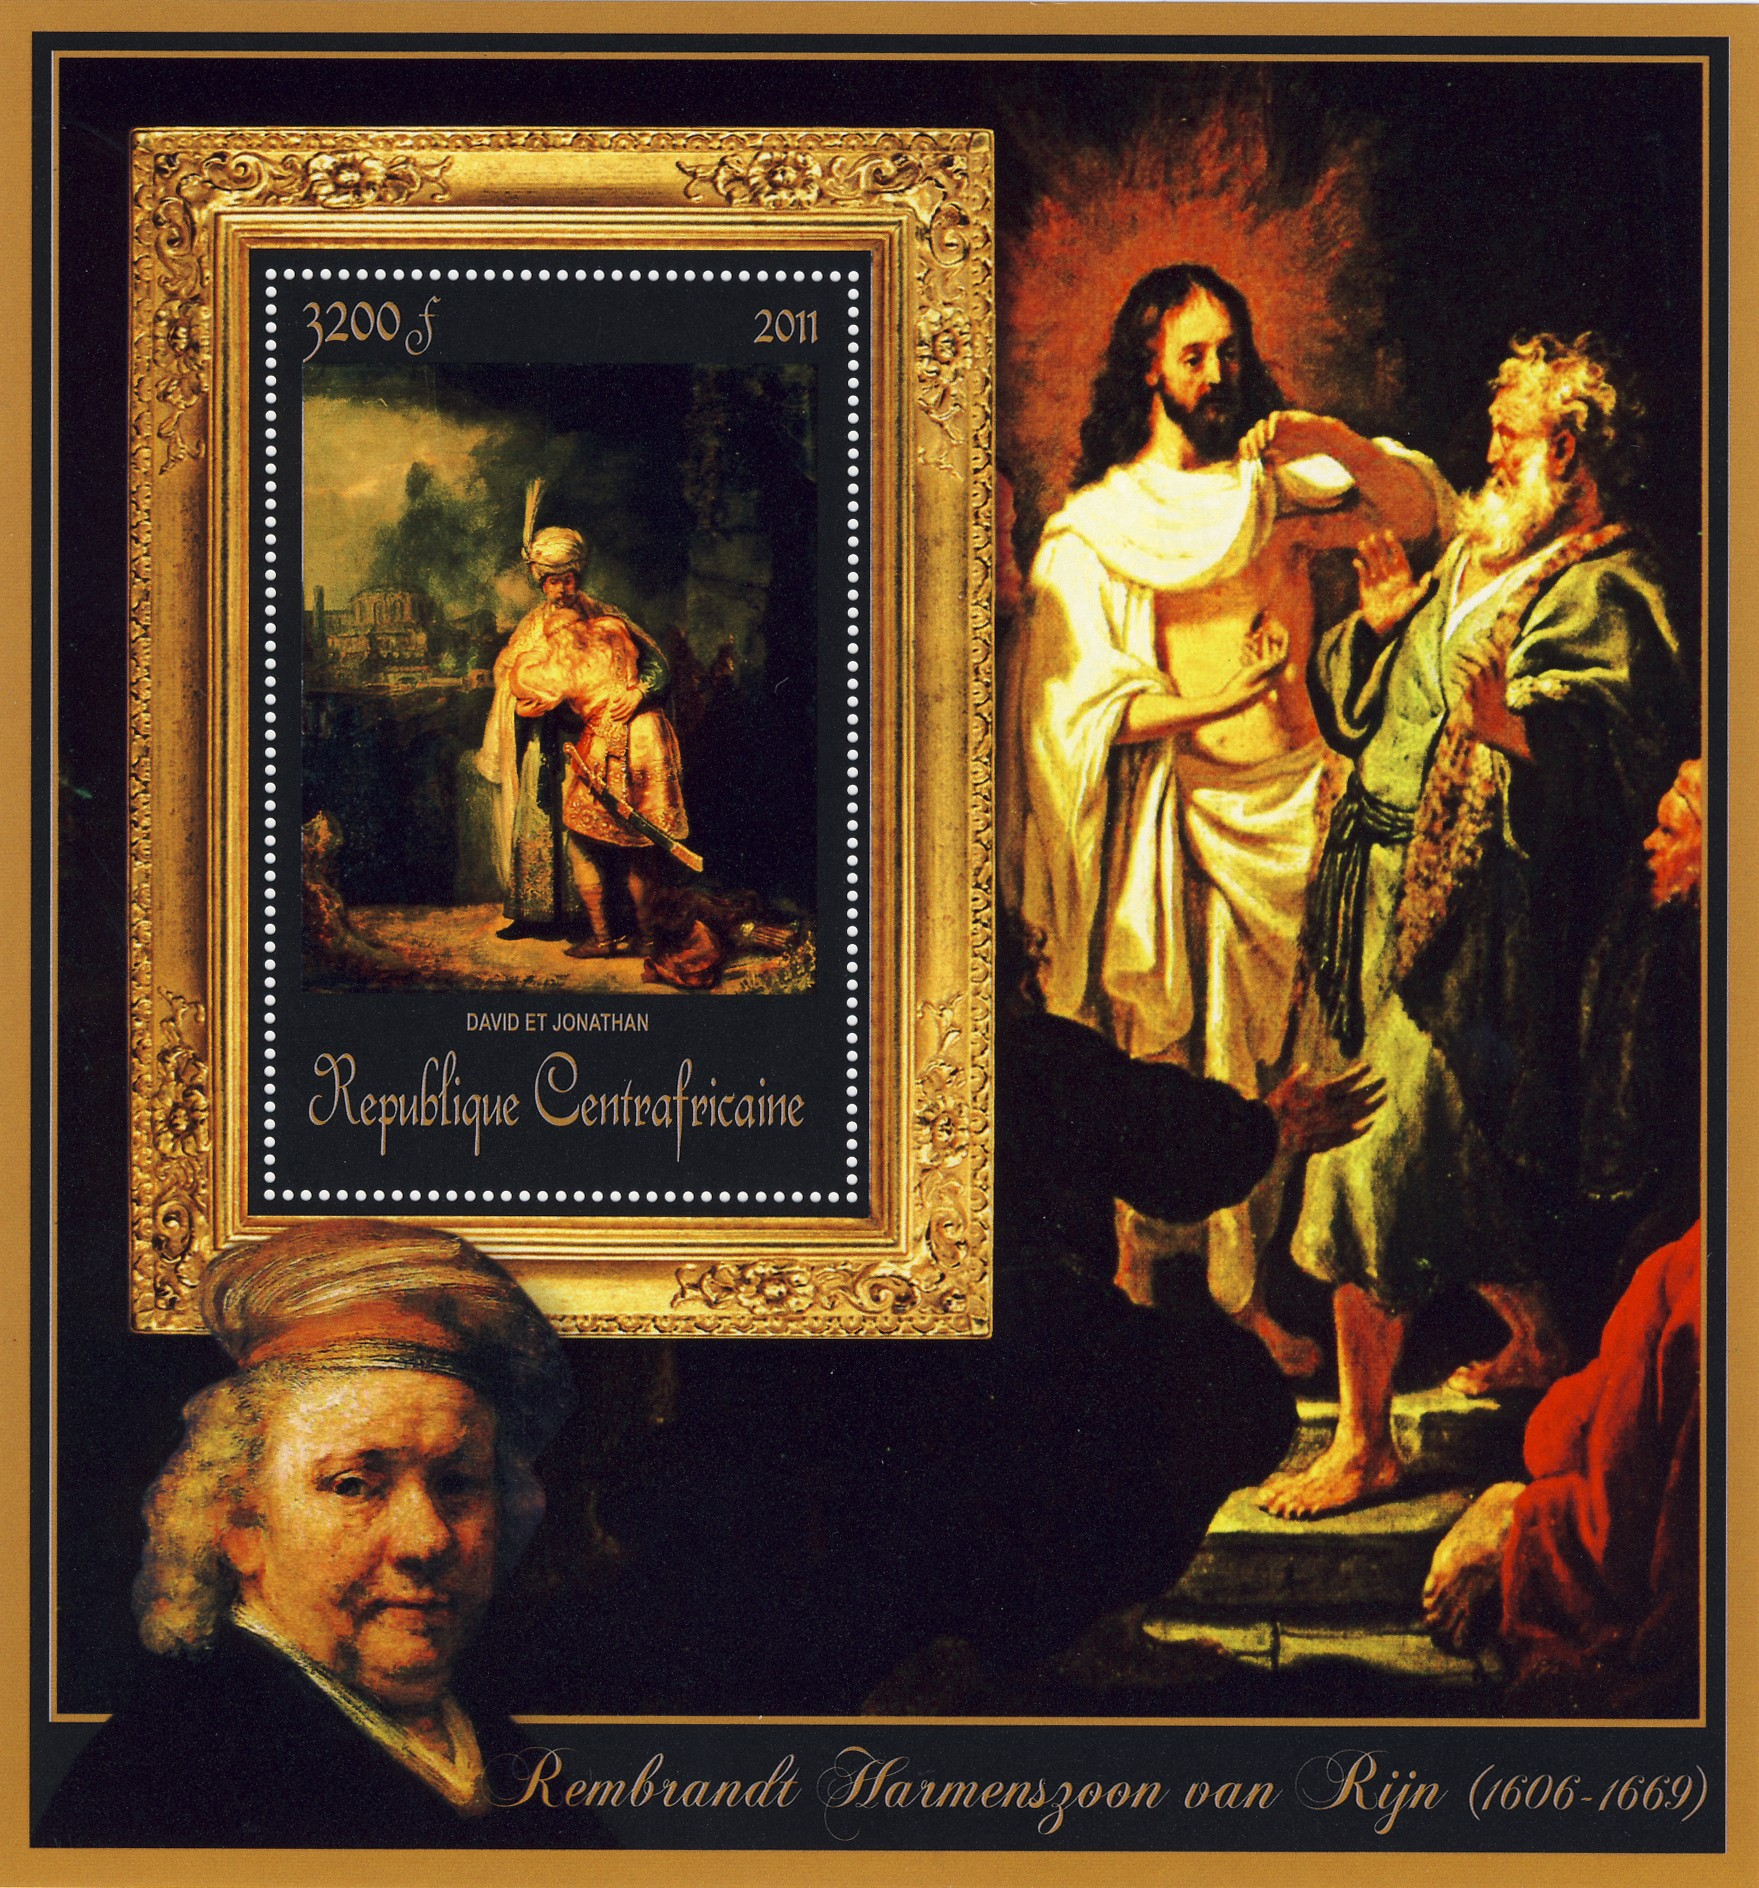 Special Block of Paintings of Rembrandt van Rijn, (David et Jonathan). - Issue of Central African republic postage stamps